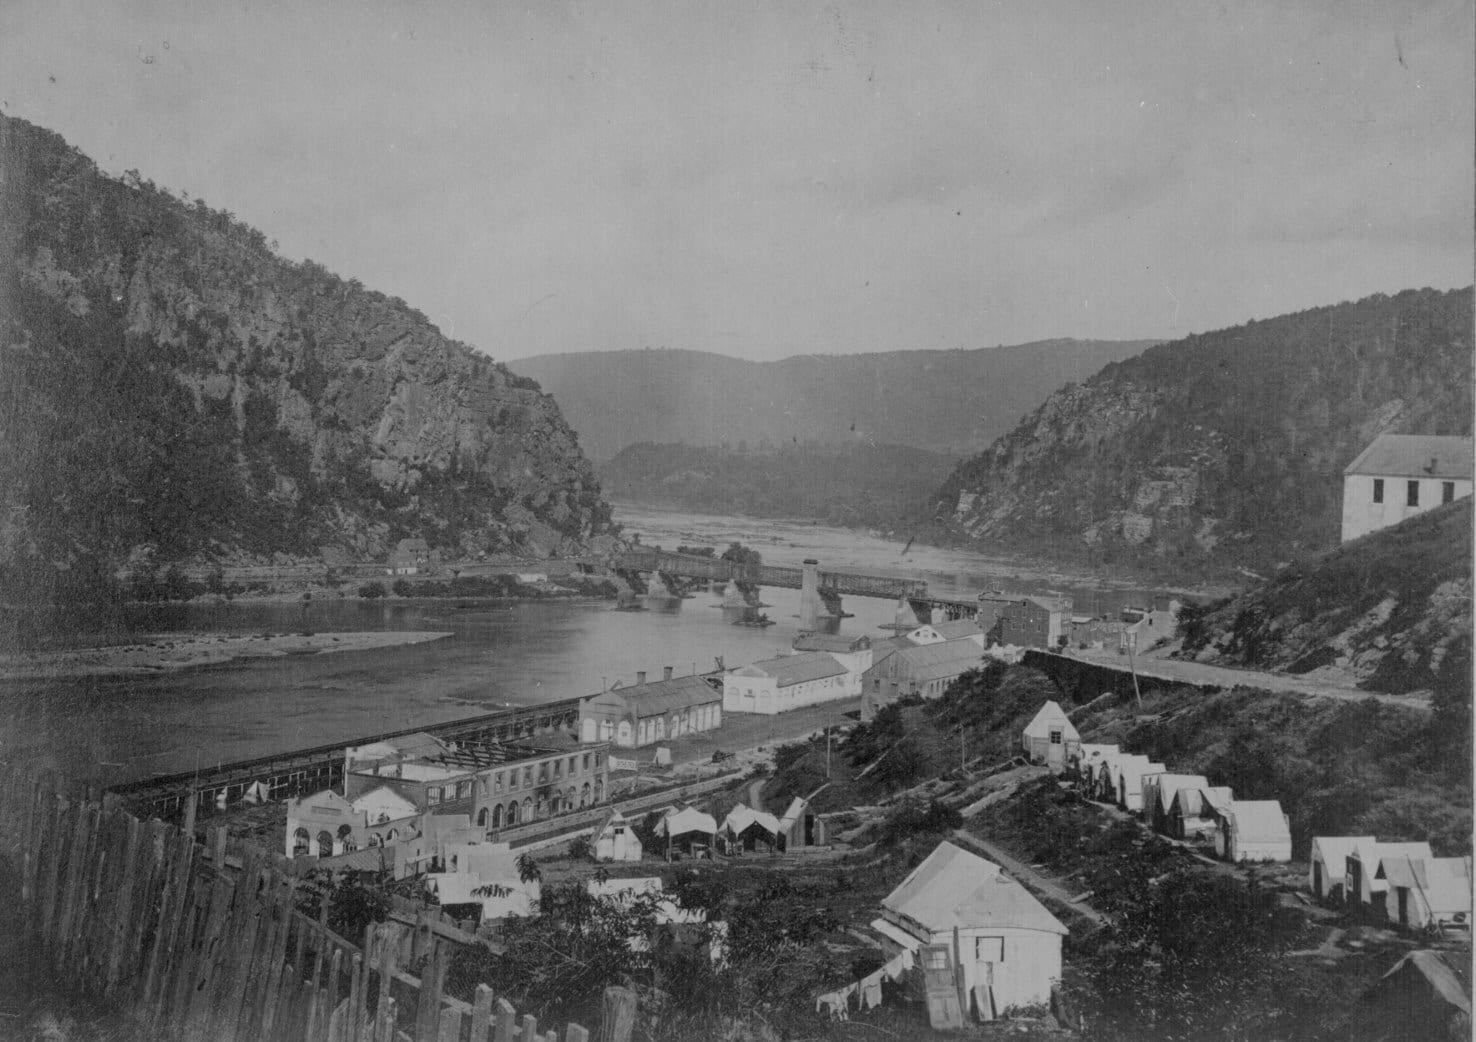 Harpers Ferry and the Potomac River in 1865